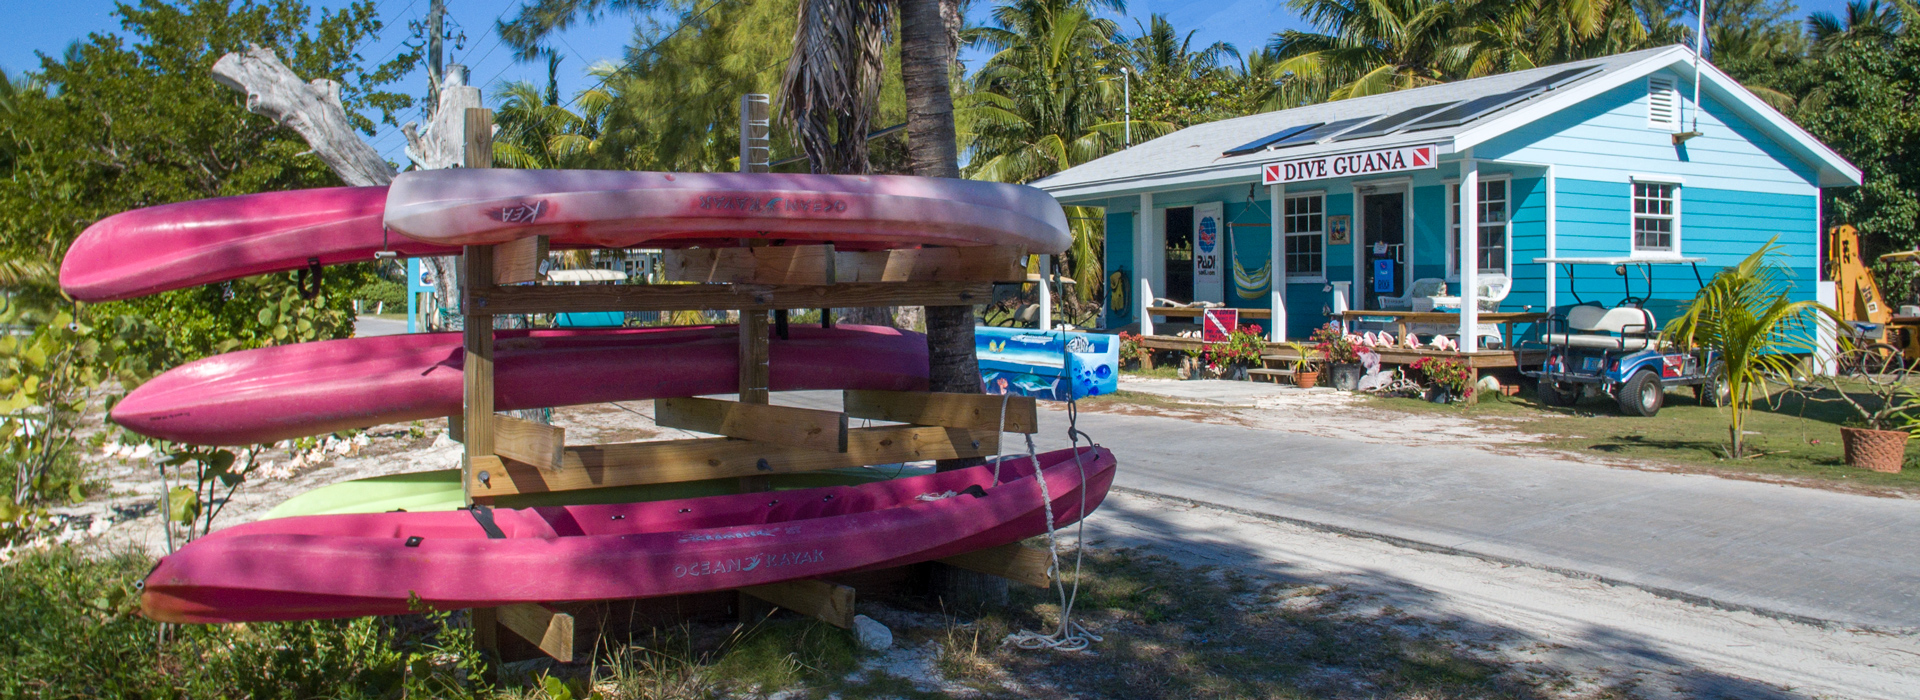 Dive Guana Gift Shop on Great Guana Cay